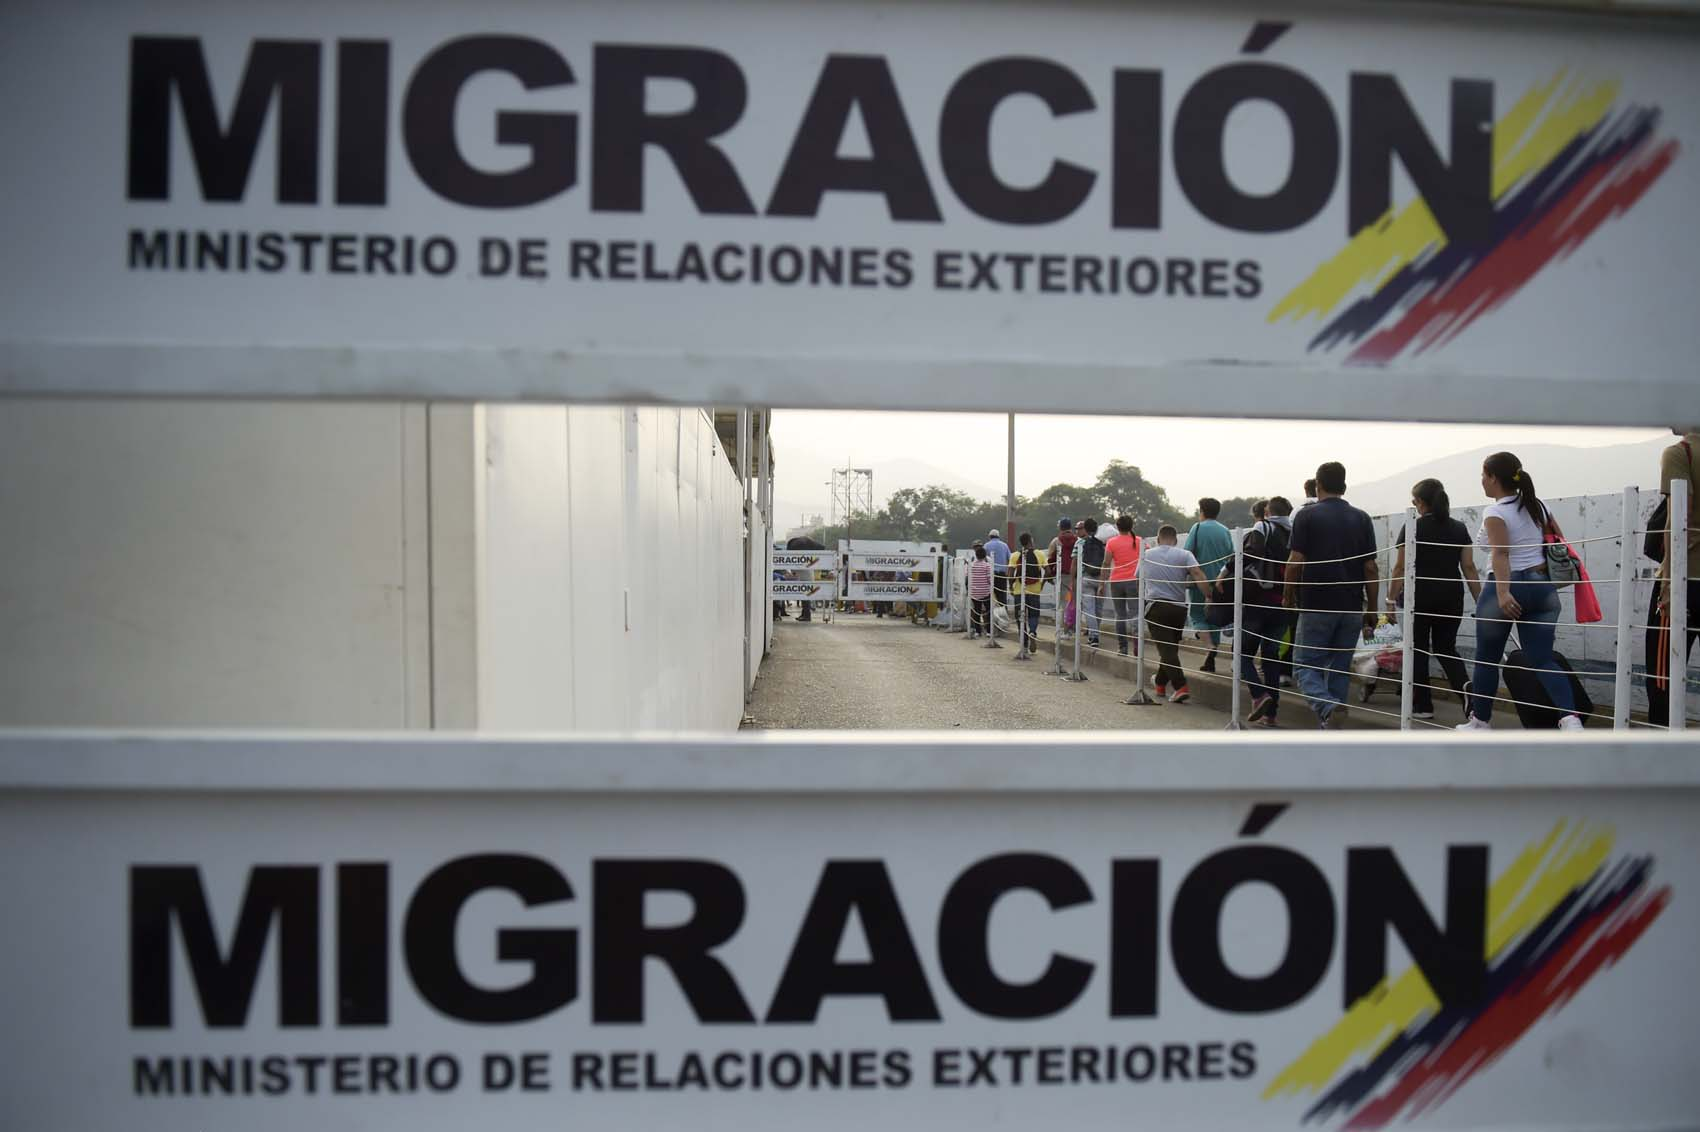 People queue at the Colombian migration office on the Simon Bolivar International Bridge on the border between the Colombian city of Cucuta and the Venezuelan Tachira, on February 5, 2019. - The US and other countries have pledged humanitarian aid for Venezuela's opposition leader Juan Guaido's alternative administration, though it remains to be seen where and how it can enter the country without the military's support. The young lawmaker accused the military of planning to divert aid being stockpiled in Colombia, Brazil and an unidentified Caribbean island, in order to distribute it through the socialist government's subsidized food program for supporters. (Photo by Raul ARBOLEDA / AFP)